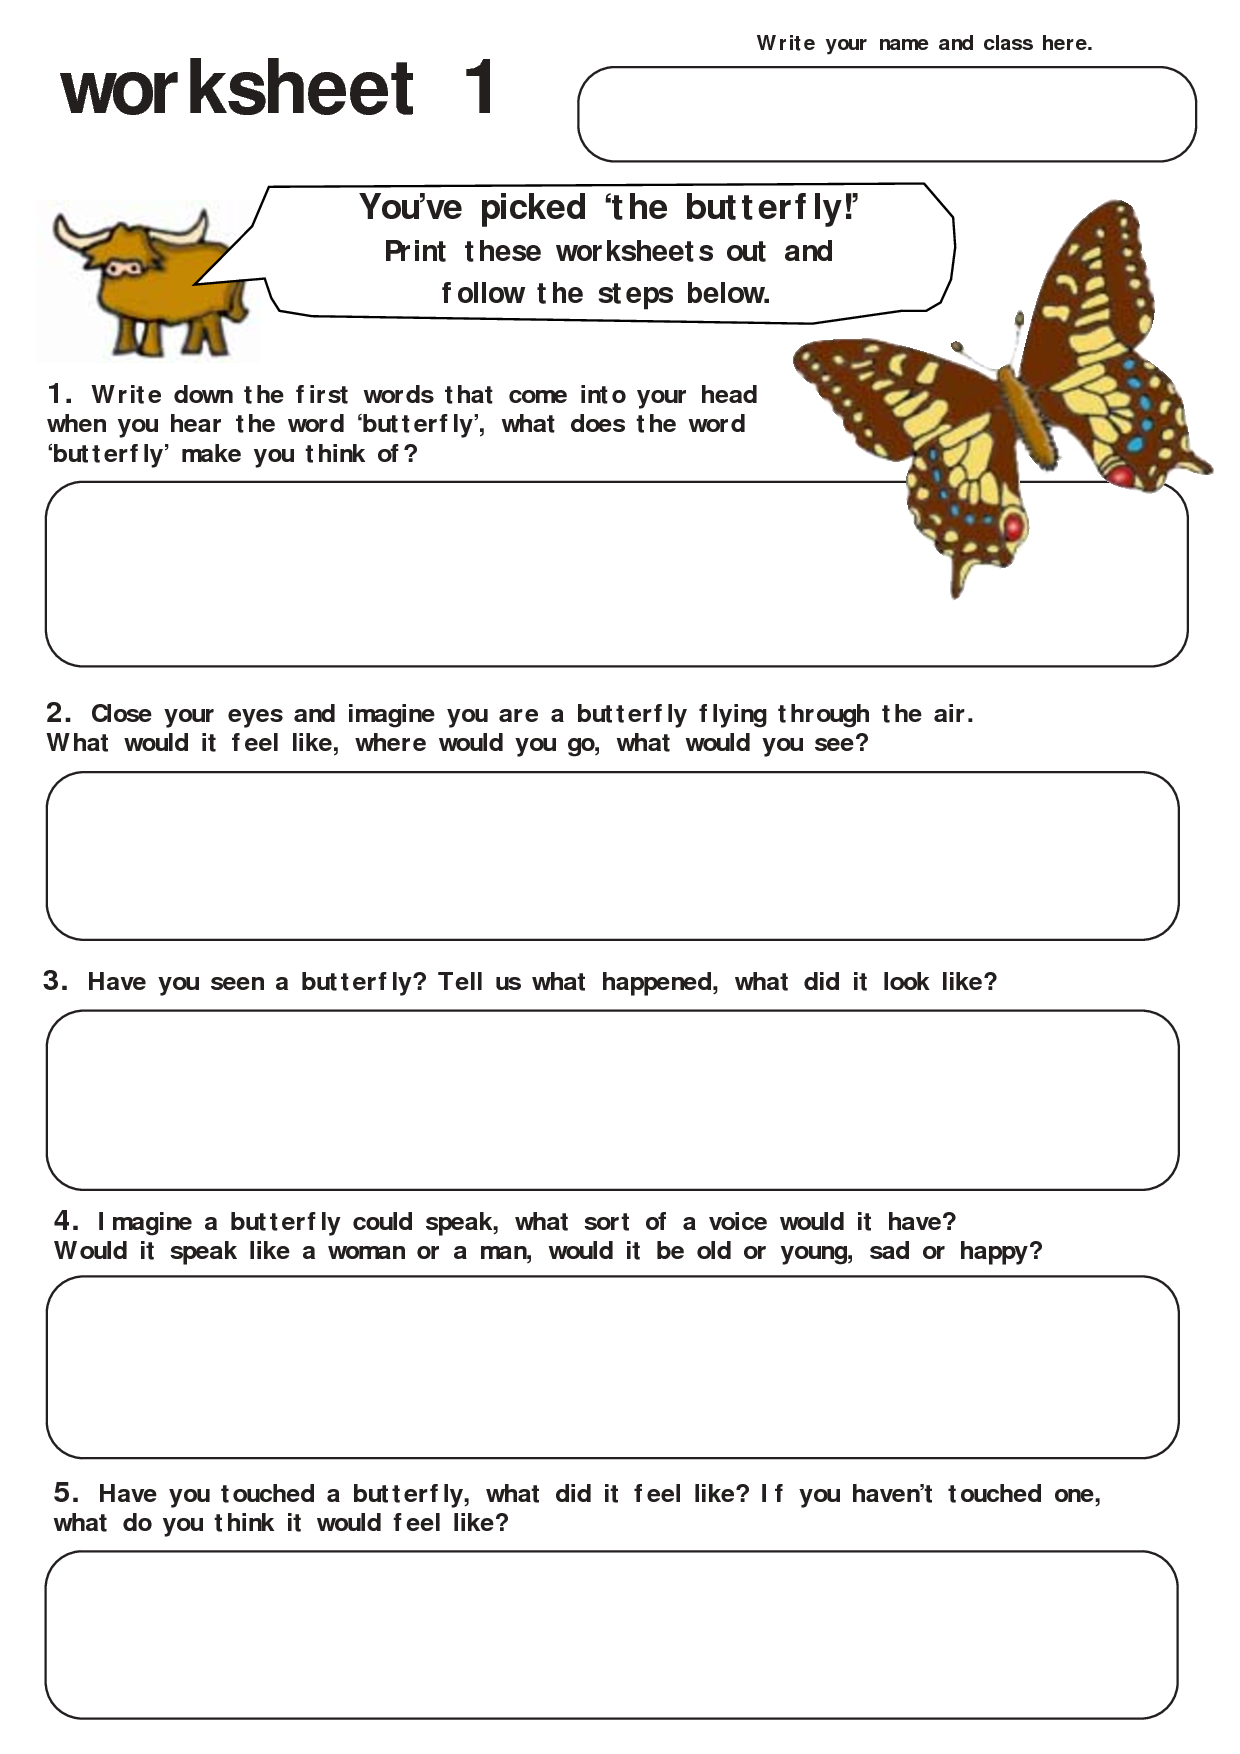 worksheet Life Cycle Of Butterfly Worksheet 1000 images about life cycle resources on pinterest ants cycles and lesson plans